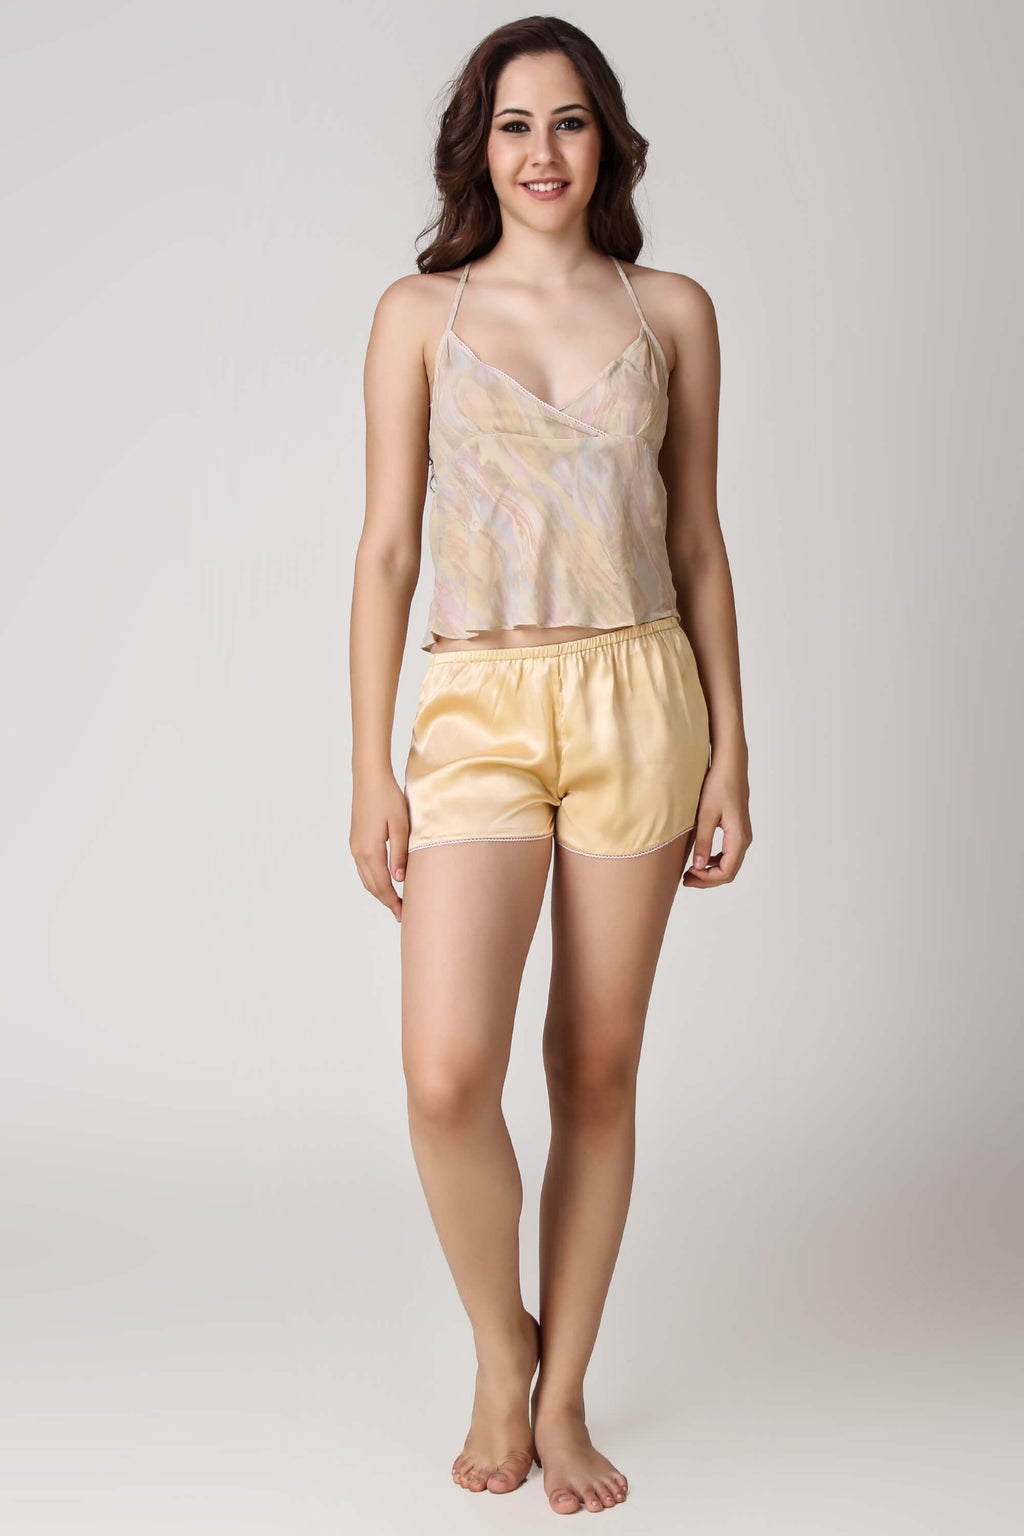 Iris, Sheer Top & Shorts